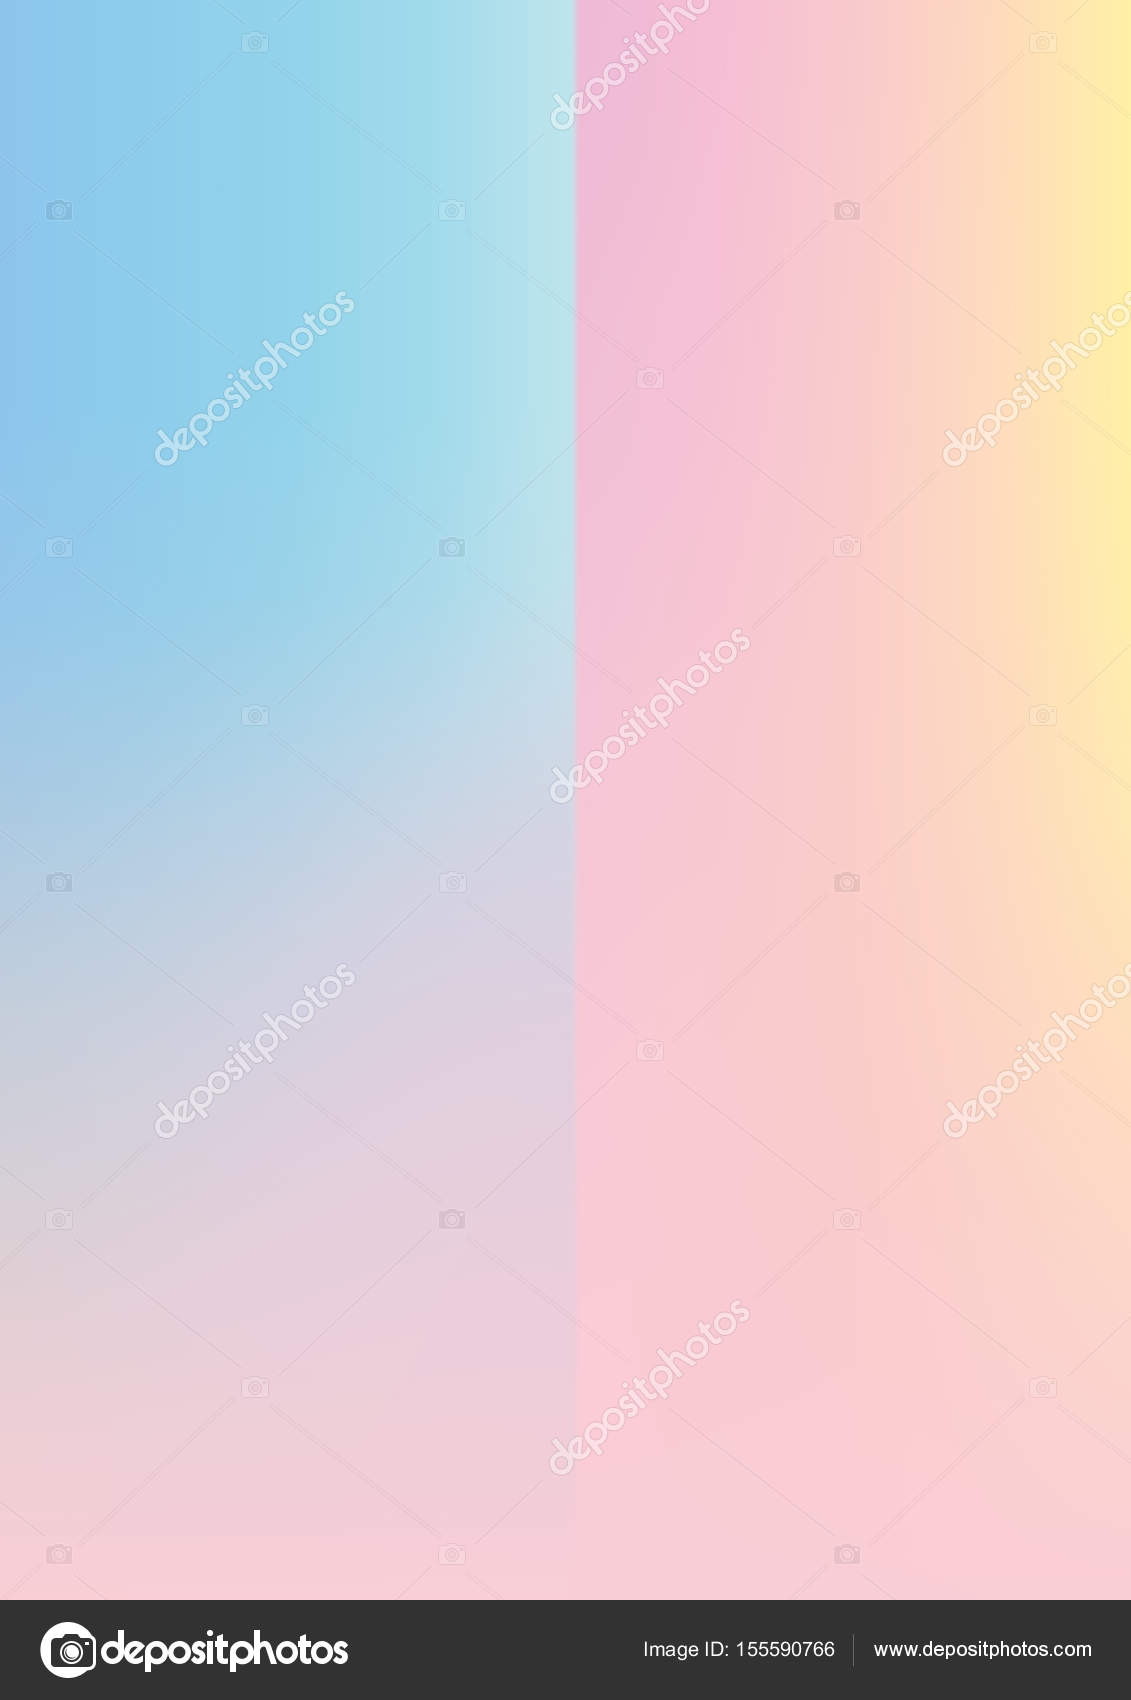 Holographic gradient baby blue and pink paper background \u2014 Stock